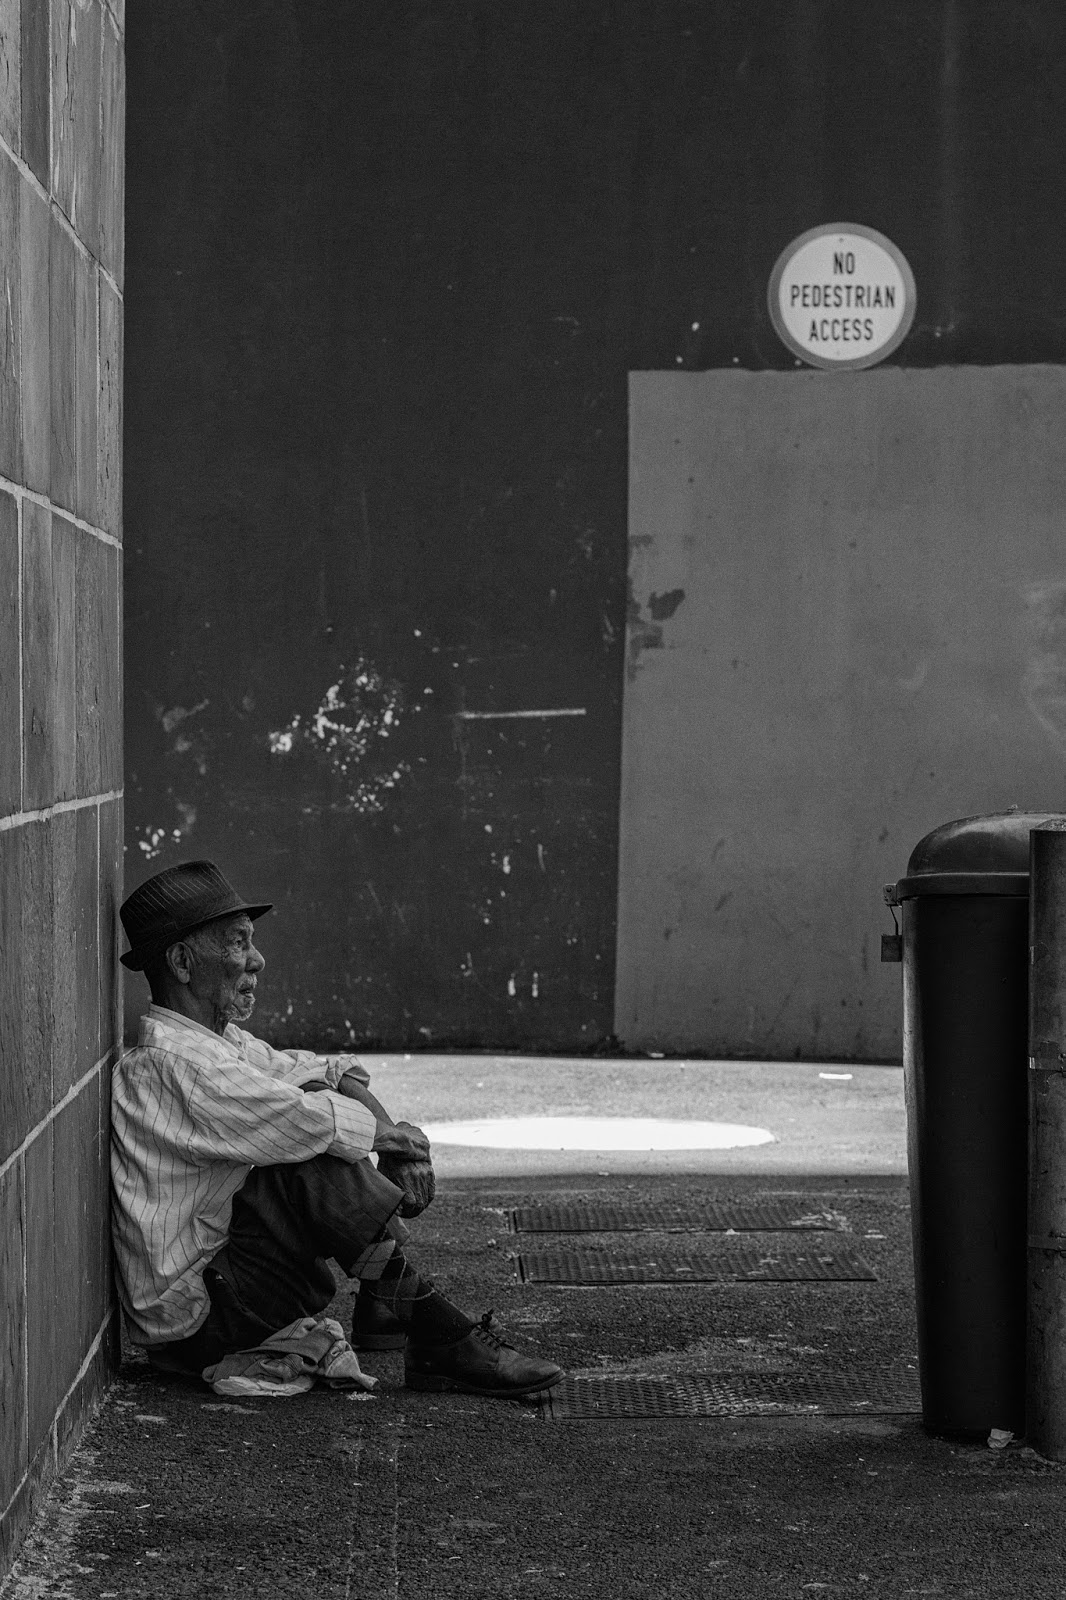 A man sits against a wall- his hat, a manhole cover and a road sign are all circles.